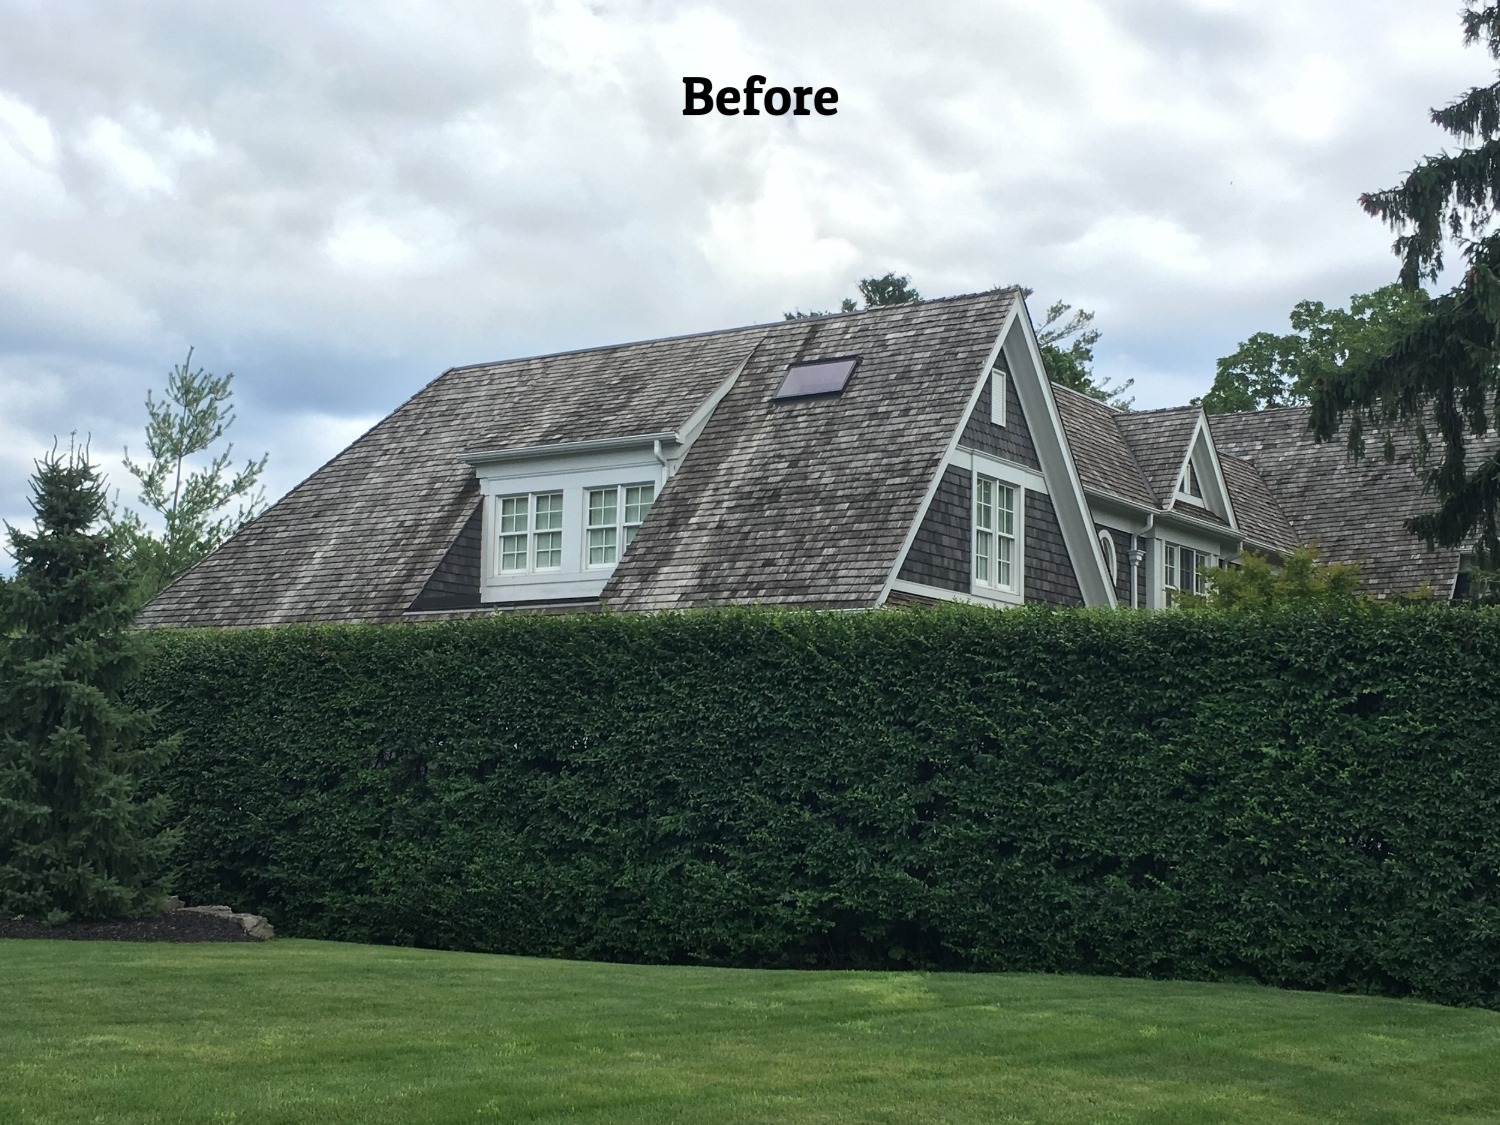 How to properly maintain your cedar shake roof